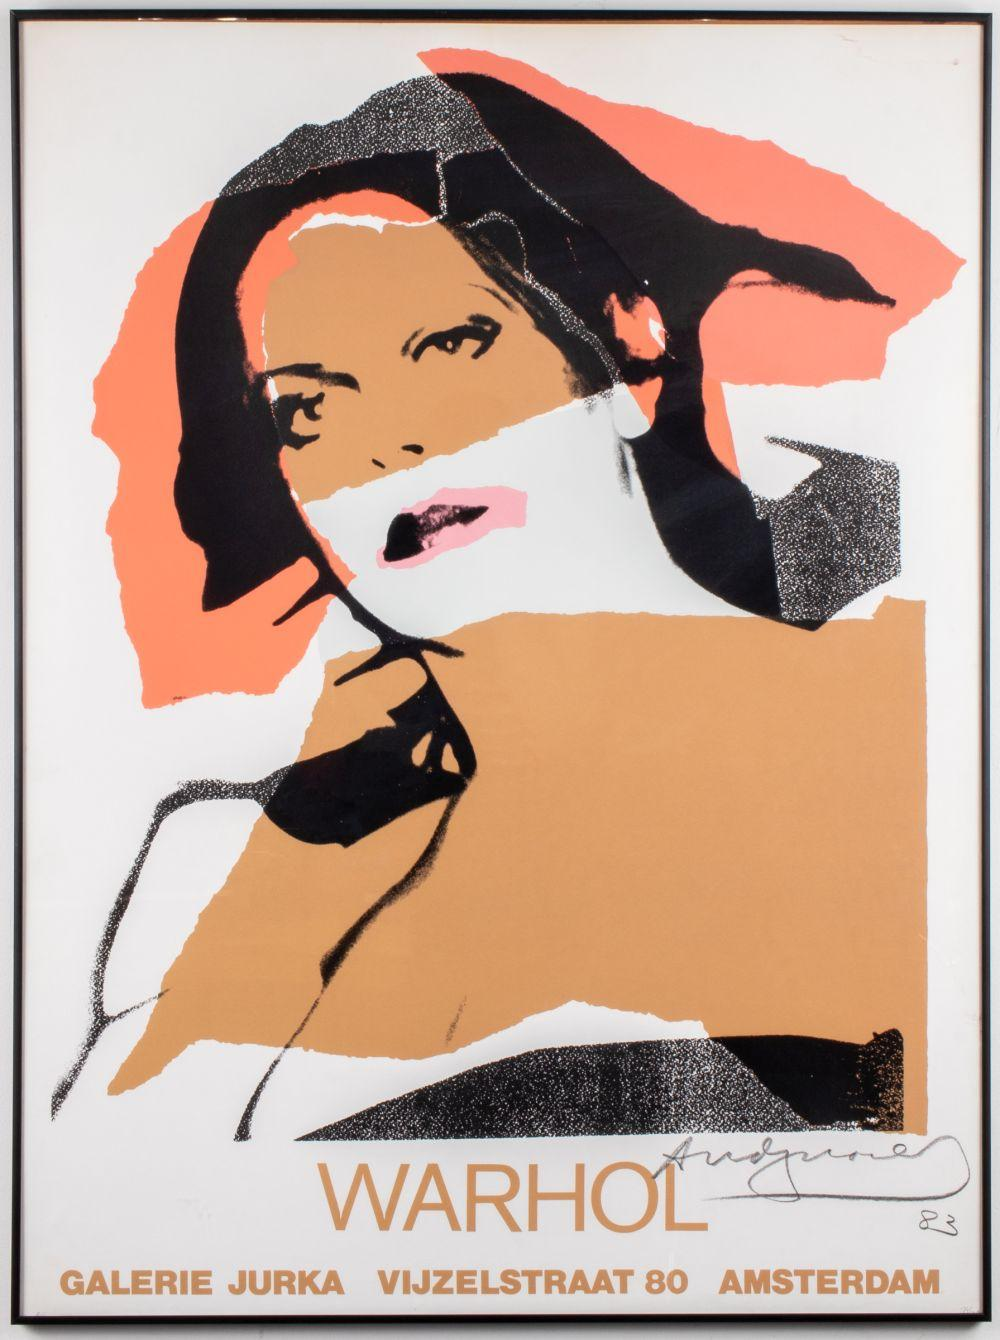 Andy Warhol Signed Poster, Galerie Jurka 1983